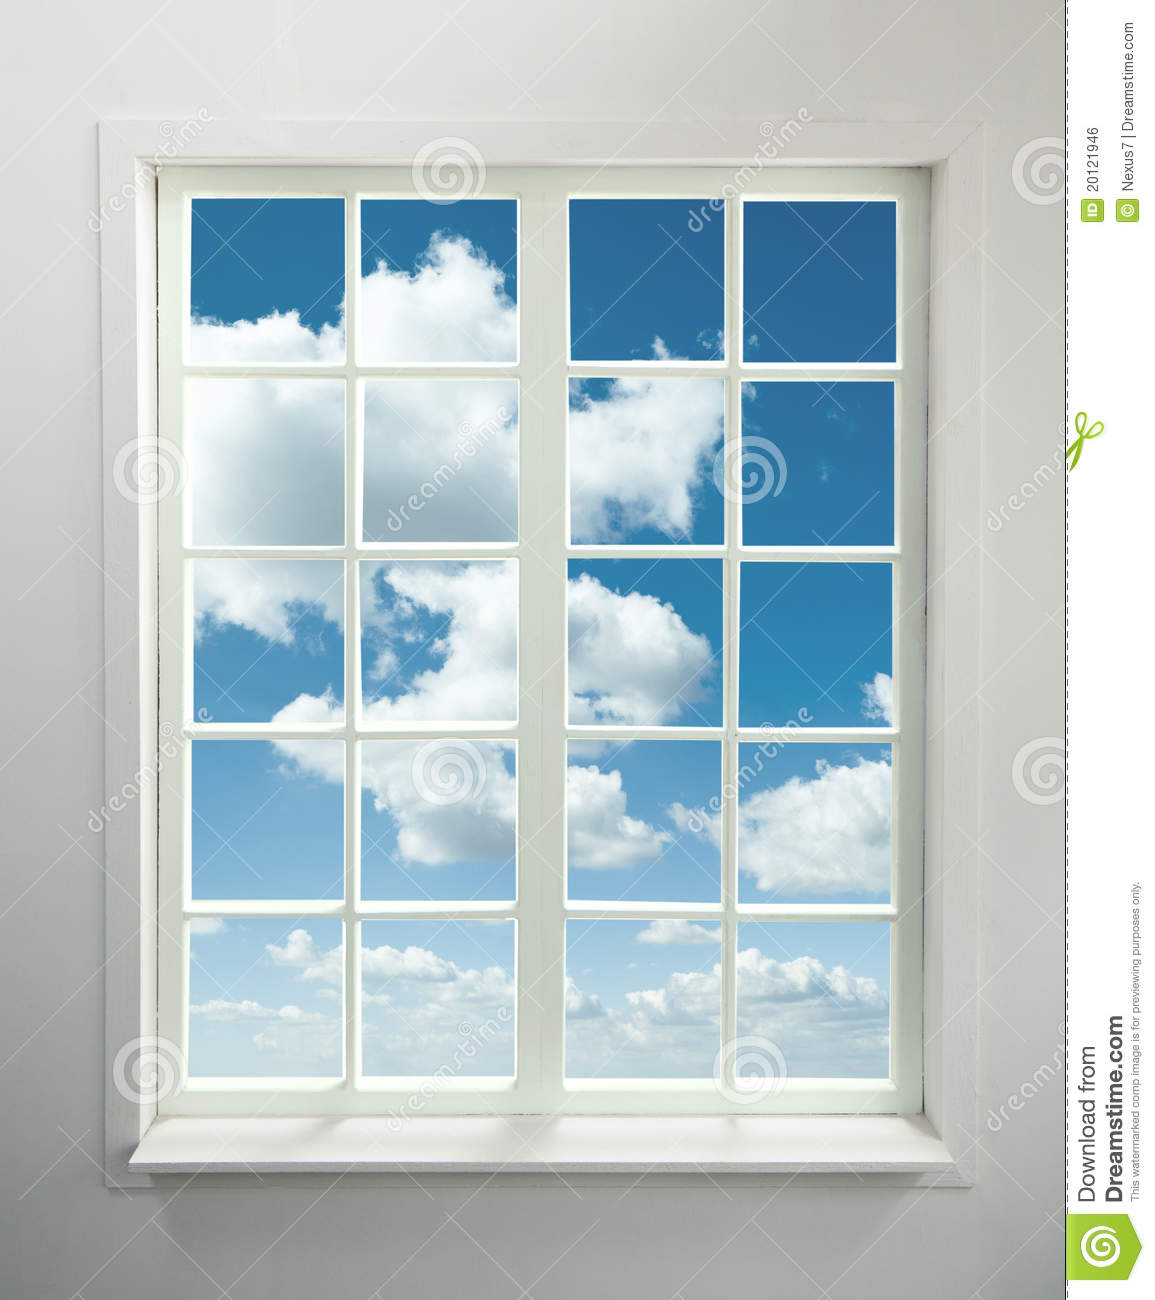 Http Www Dreamstime Com Royalty Free Stock Image Window Sky Image20121946